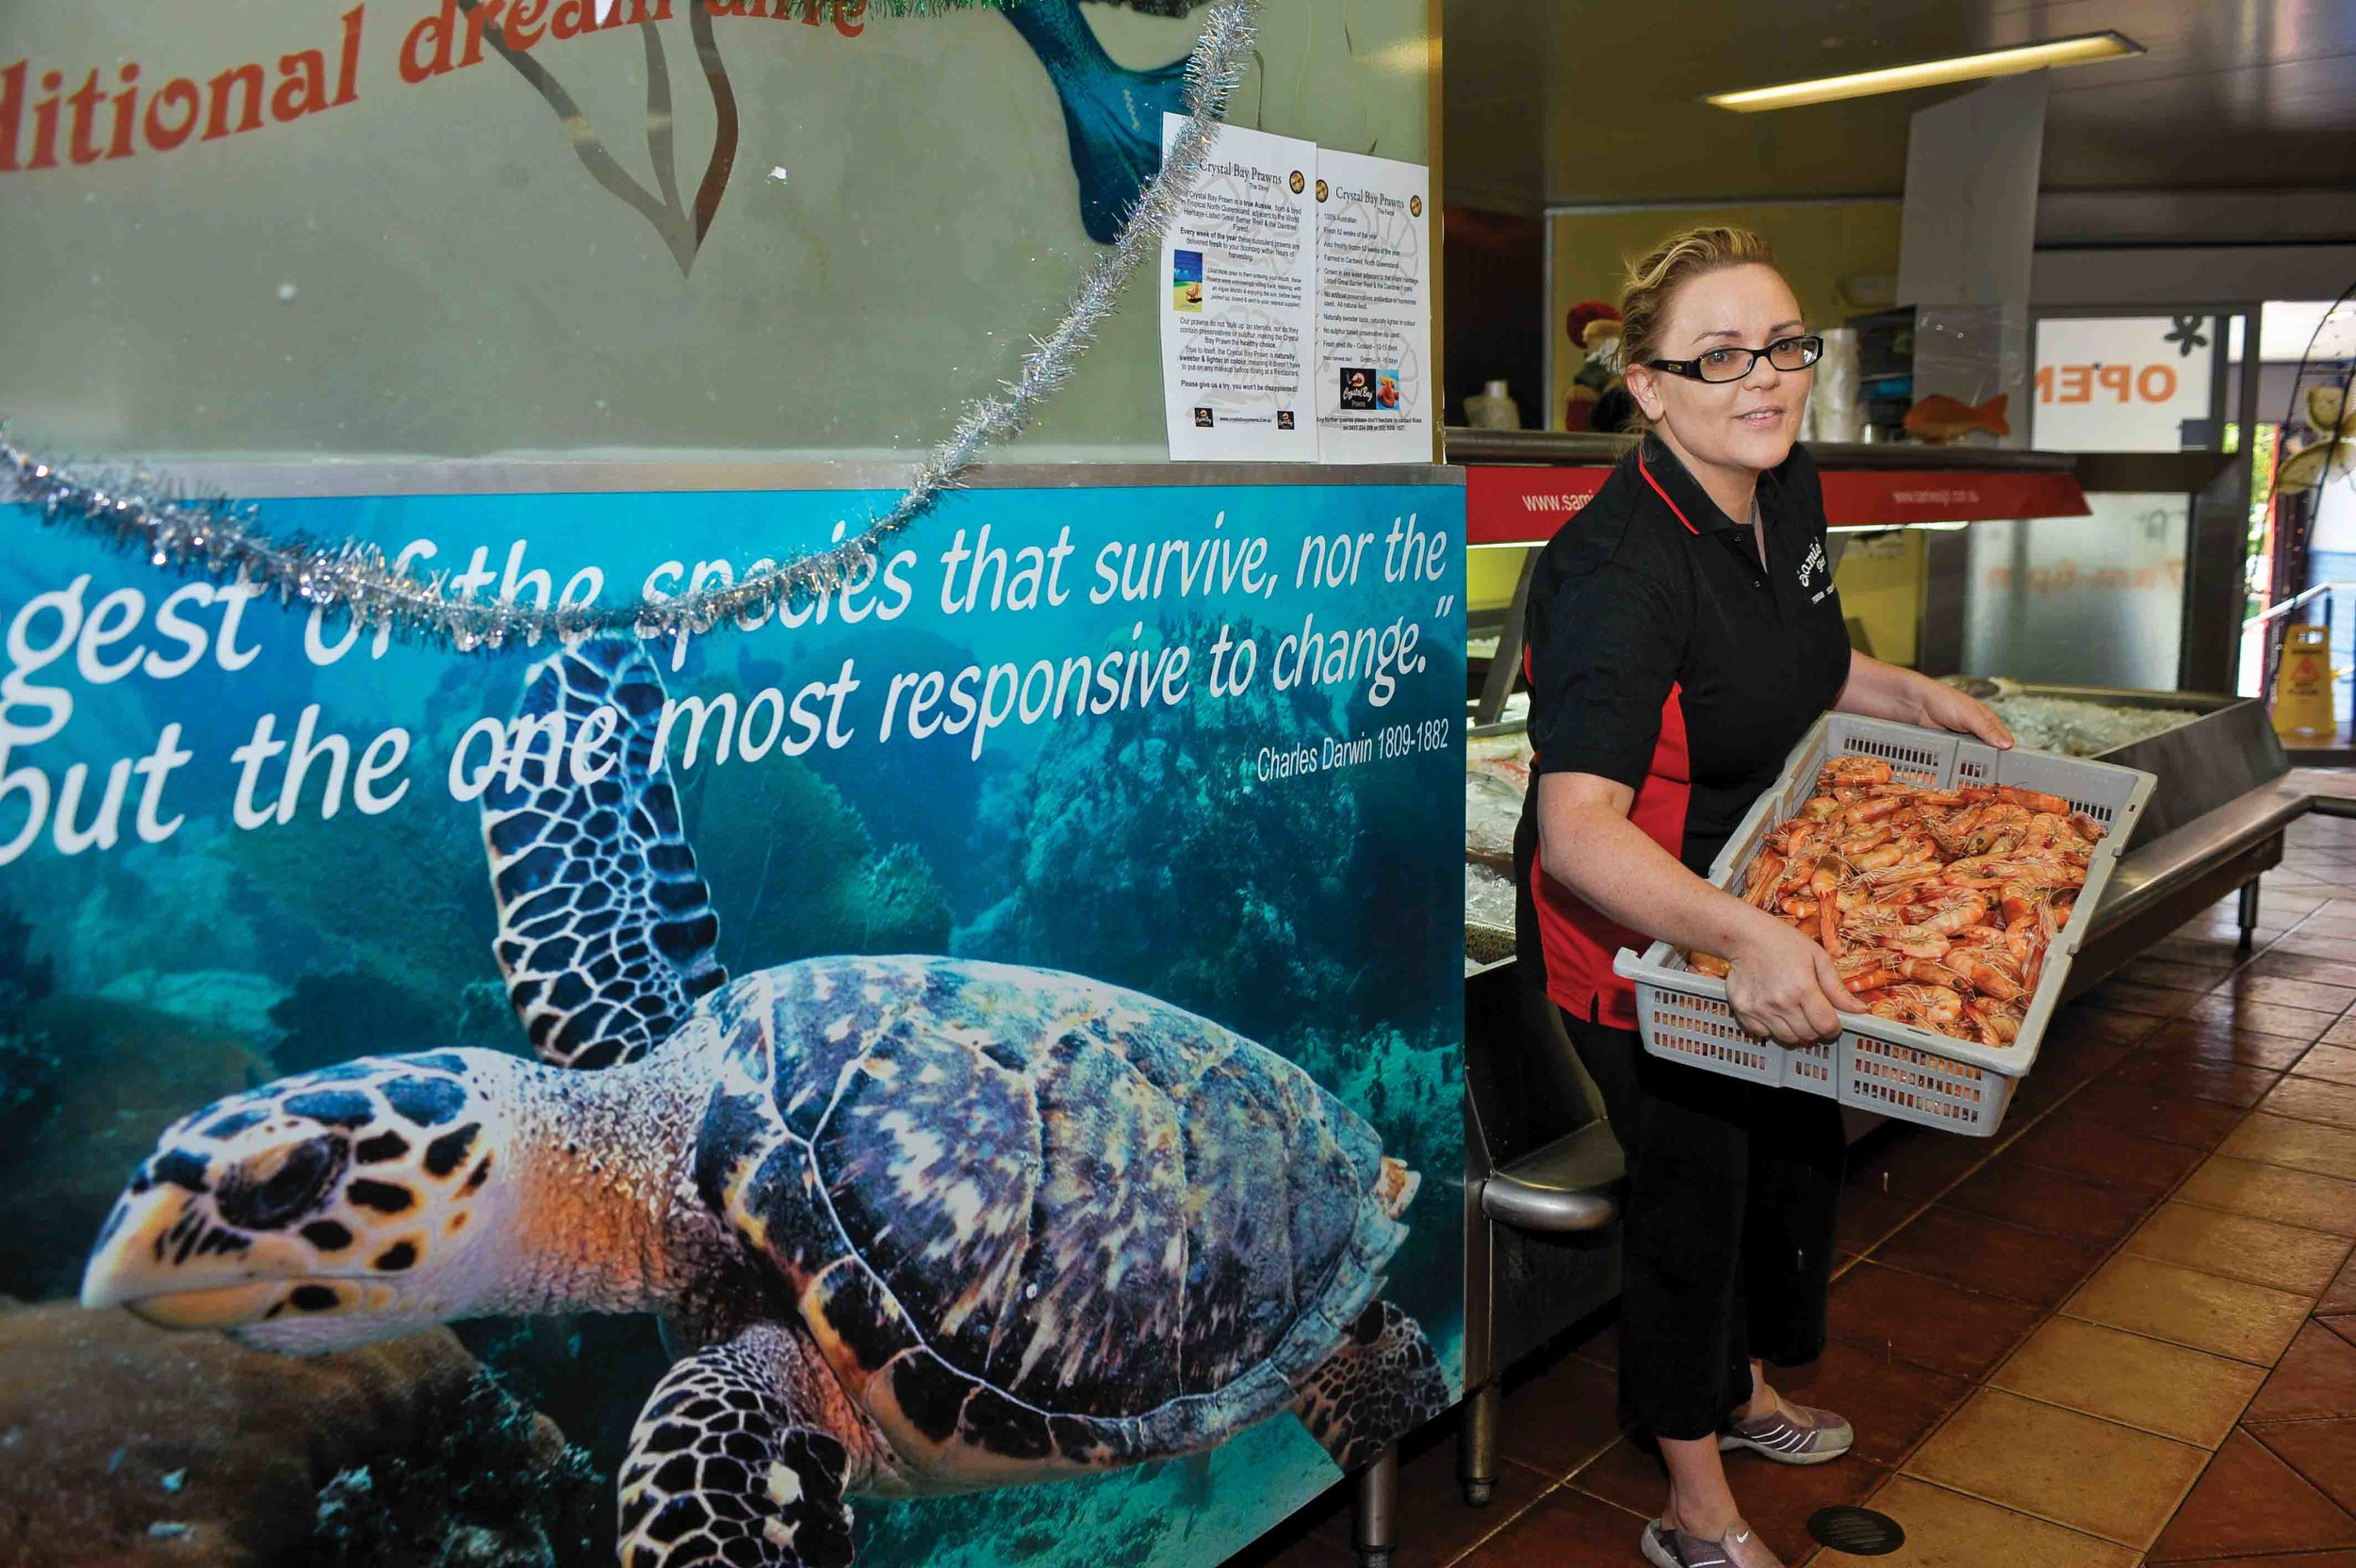 An employee of Samies Girl Fresh Seafood Market in Brisbane, Australia displays shrimp caught using TEDs. Kristina and Harry Georges, owners of Samies Girl, proudly advetise their support for sea turtle conservation; not only do they sell shrimp caught exclusively through the use od TEDs, but they also sell insulated, reusable bags whose proceeds benefit sea turtle research and education as part of their Save Our Sea Turtles Foundation. © Calen Offield